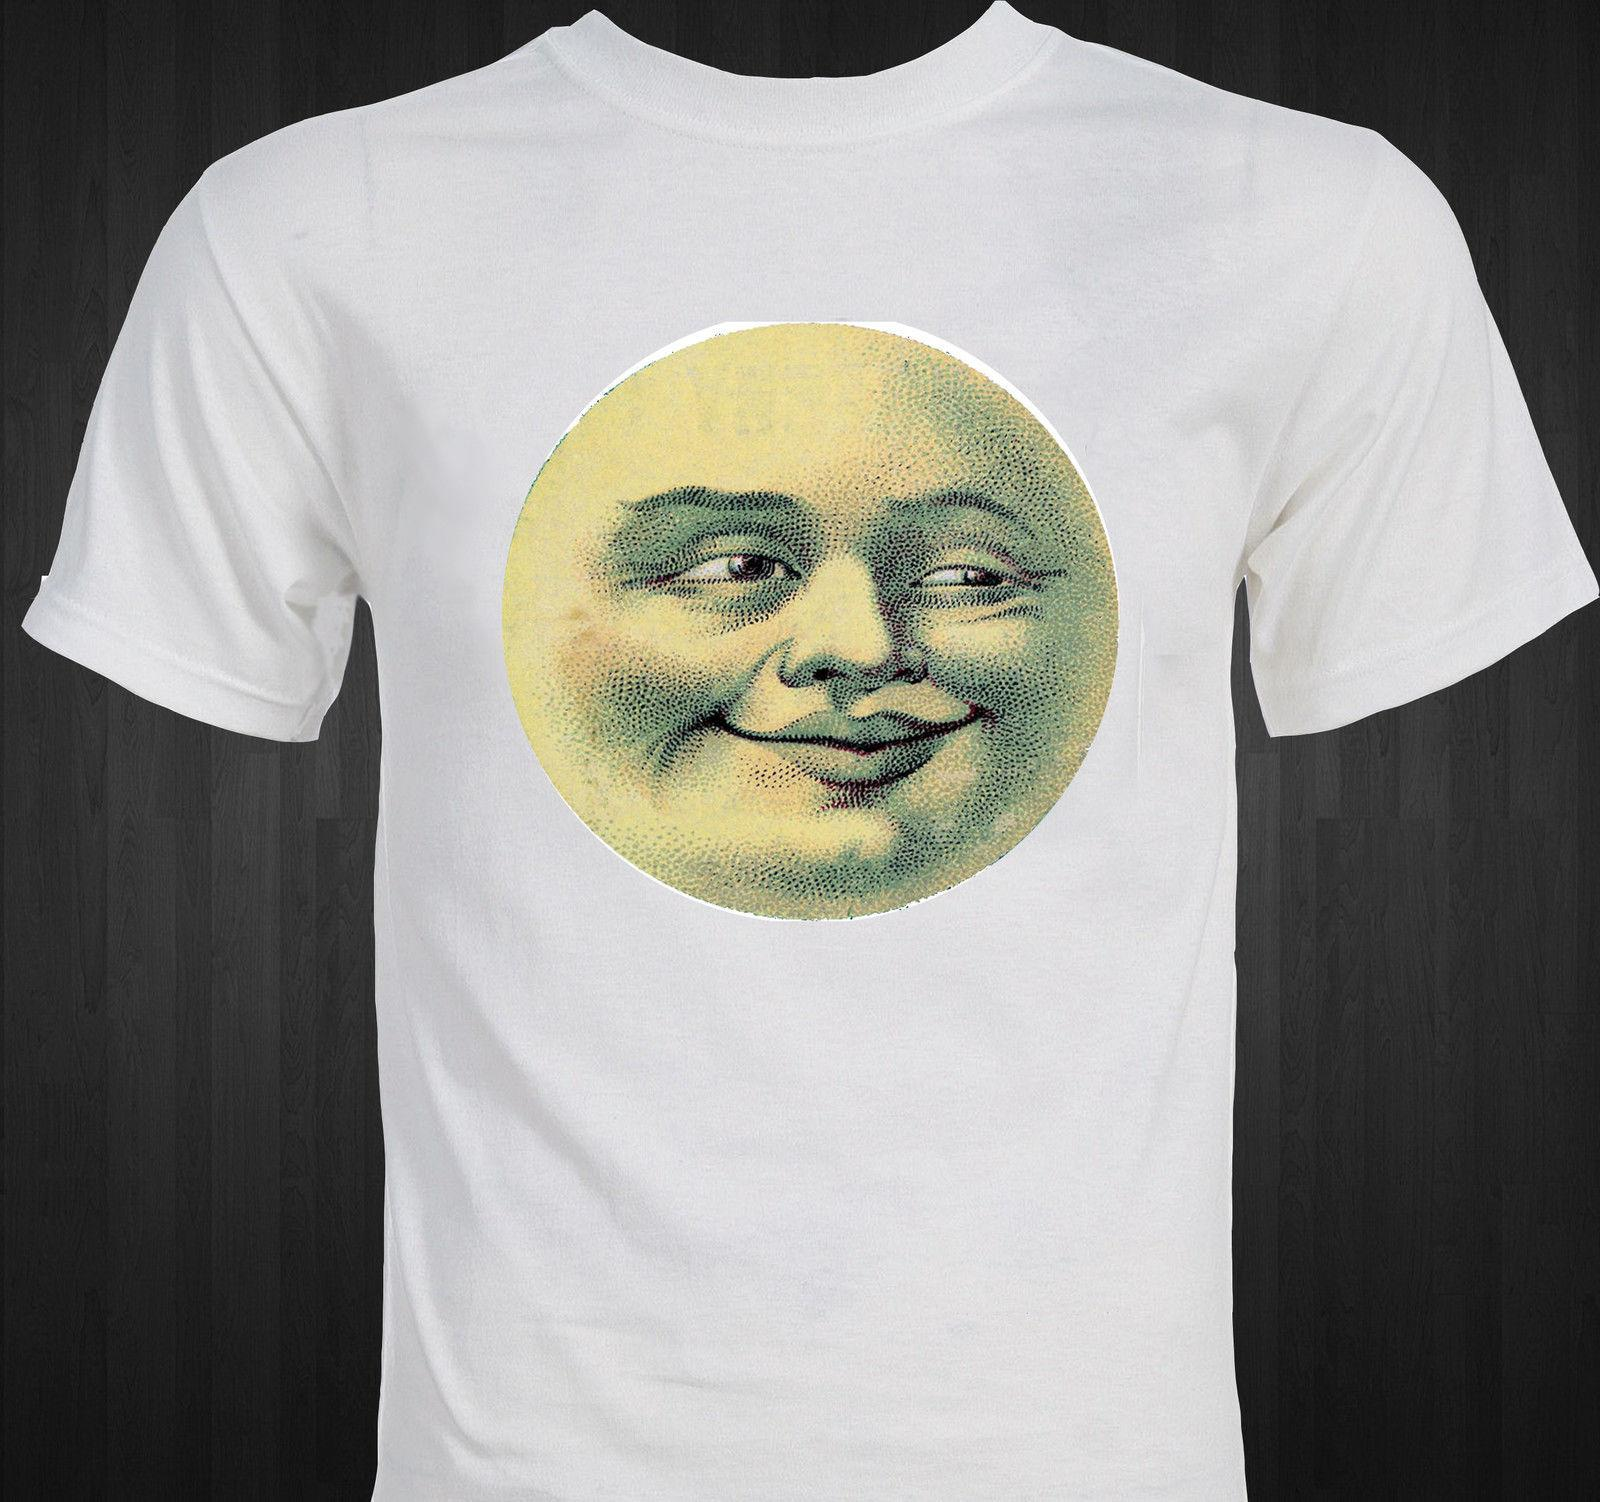 Man in the Moon Funny Victorian-era Postcard T-shirt Funny free shipping Unisex Tshirt top